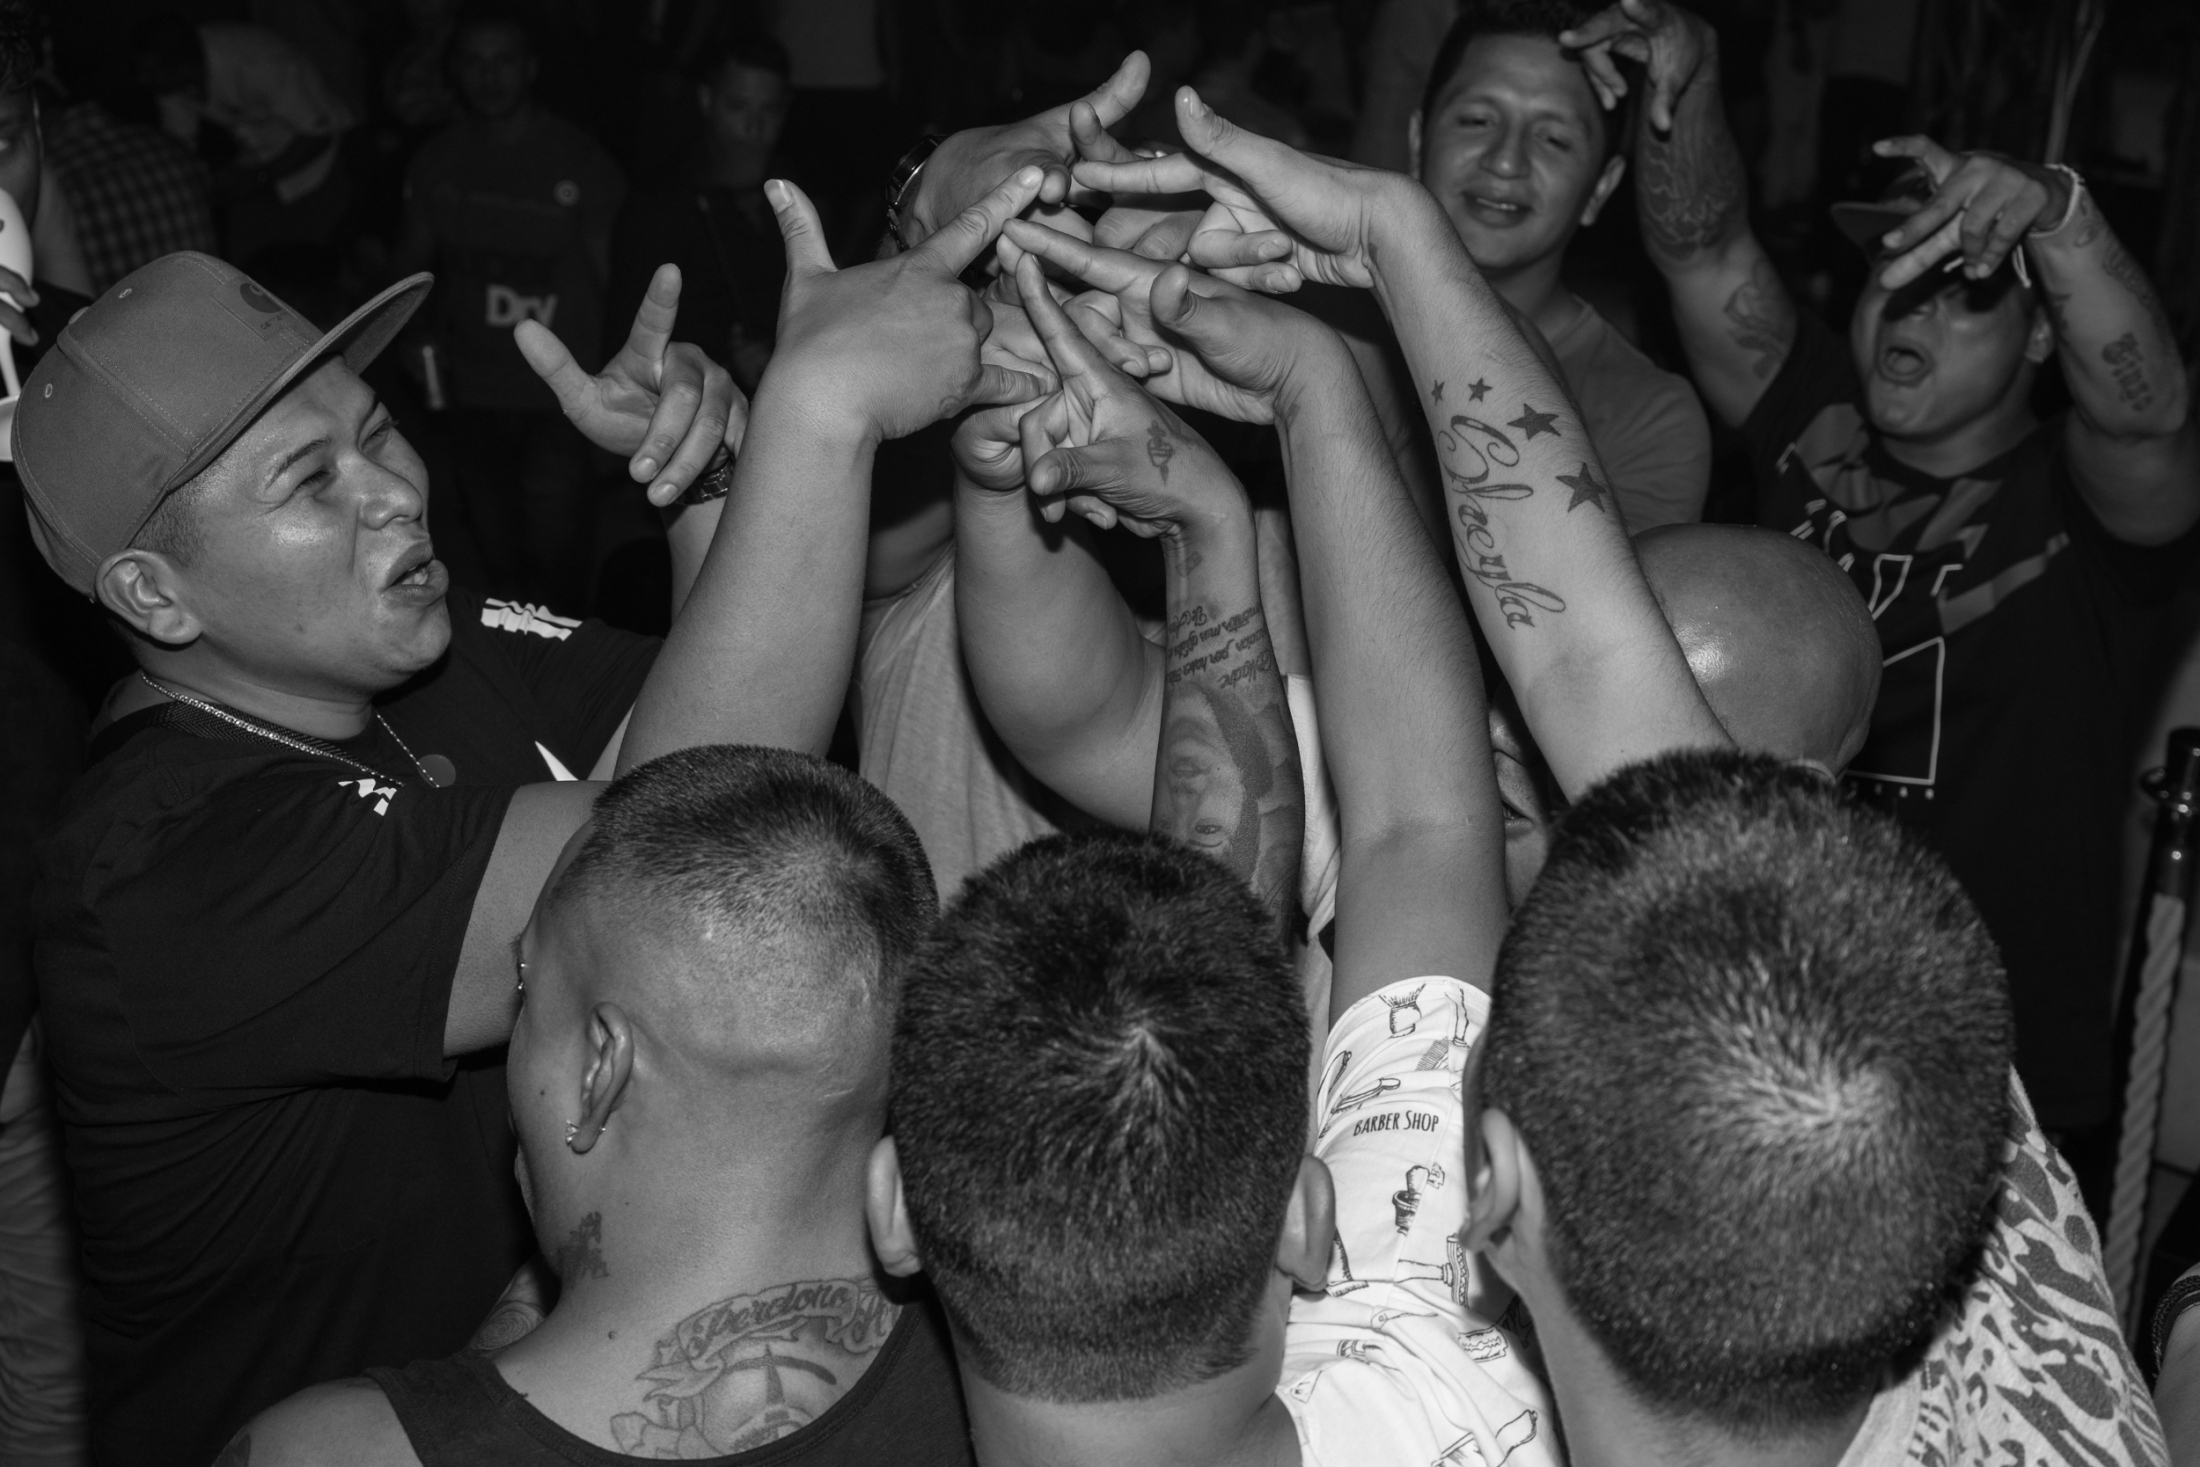 members of the Latin Kings gang form a circle and join their hands with 3 point crown signs at a local latin club in Milano.